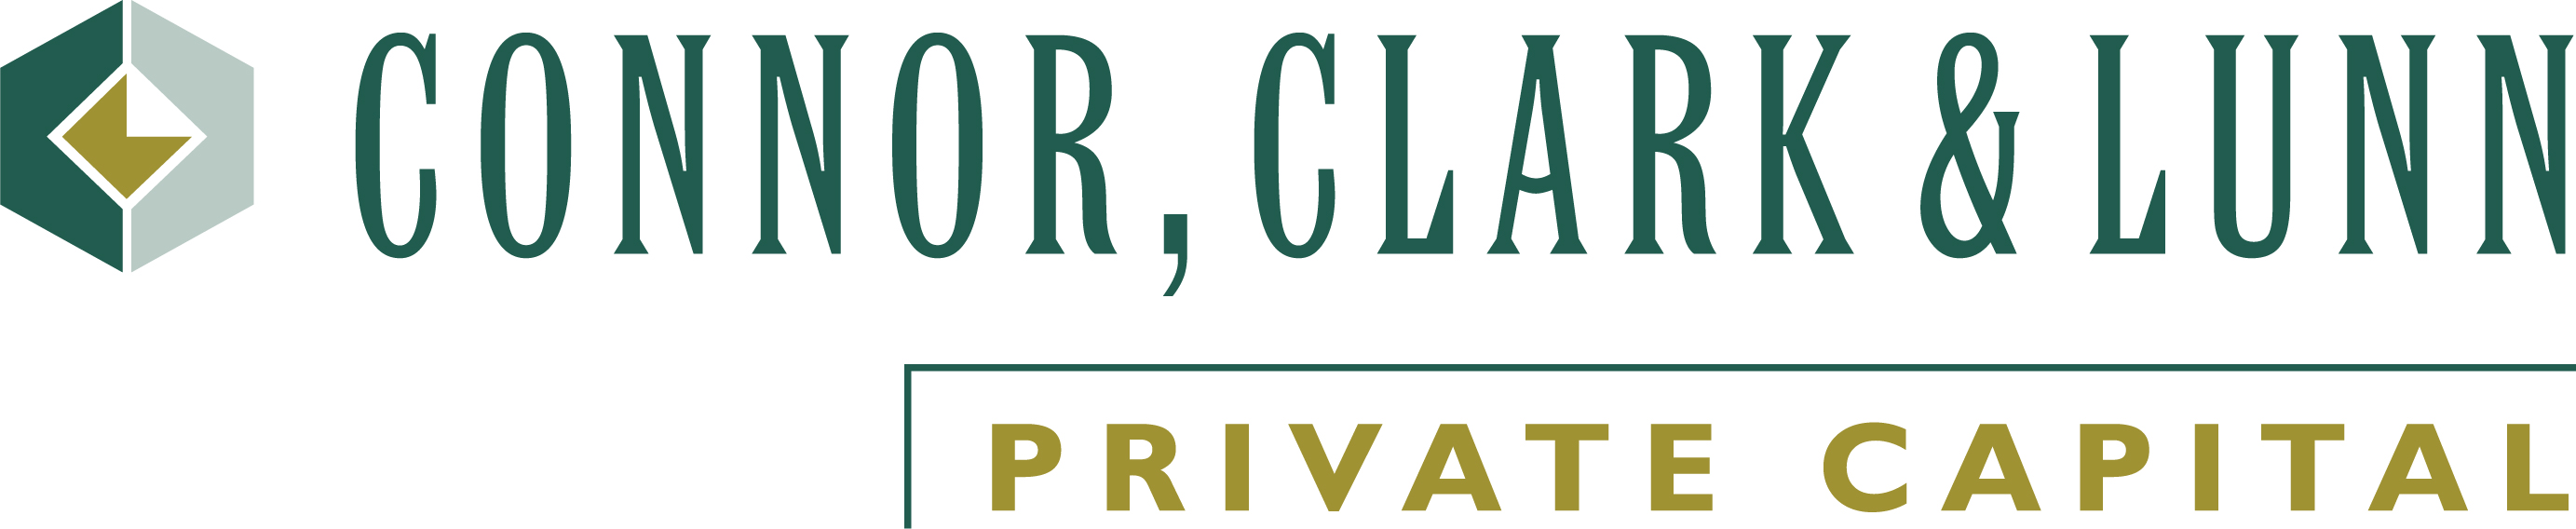 Connor, Clark & Lunn Private Capital